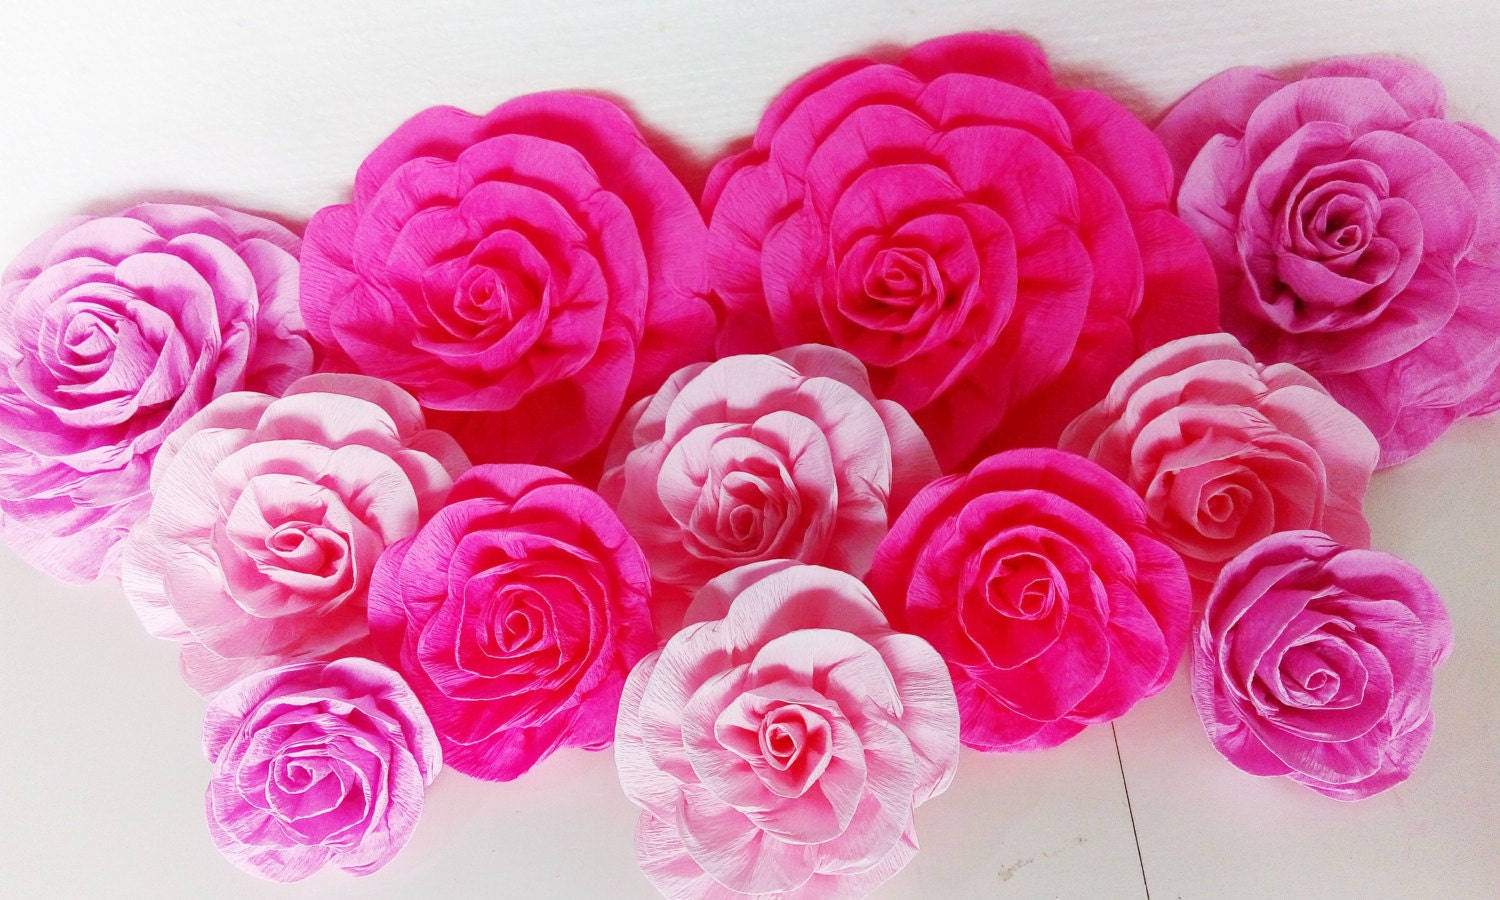 10 giant large paper flowers wall bridal baby kate shower zoom dhlflorist Images